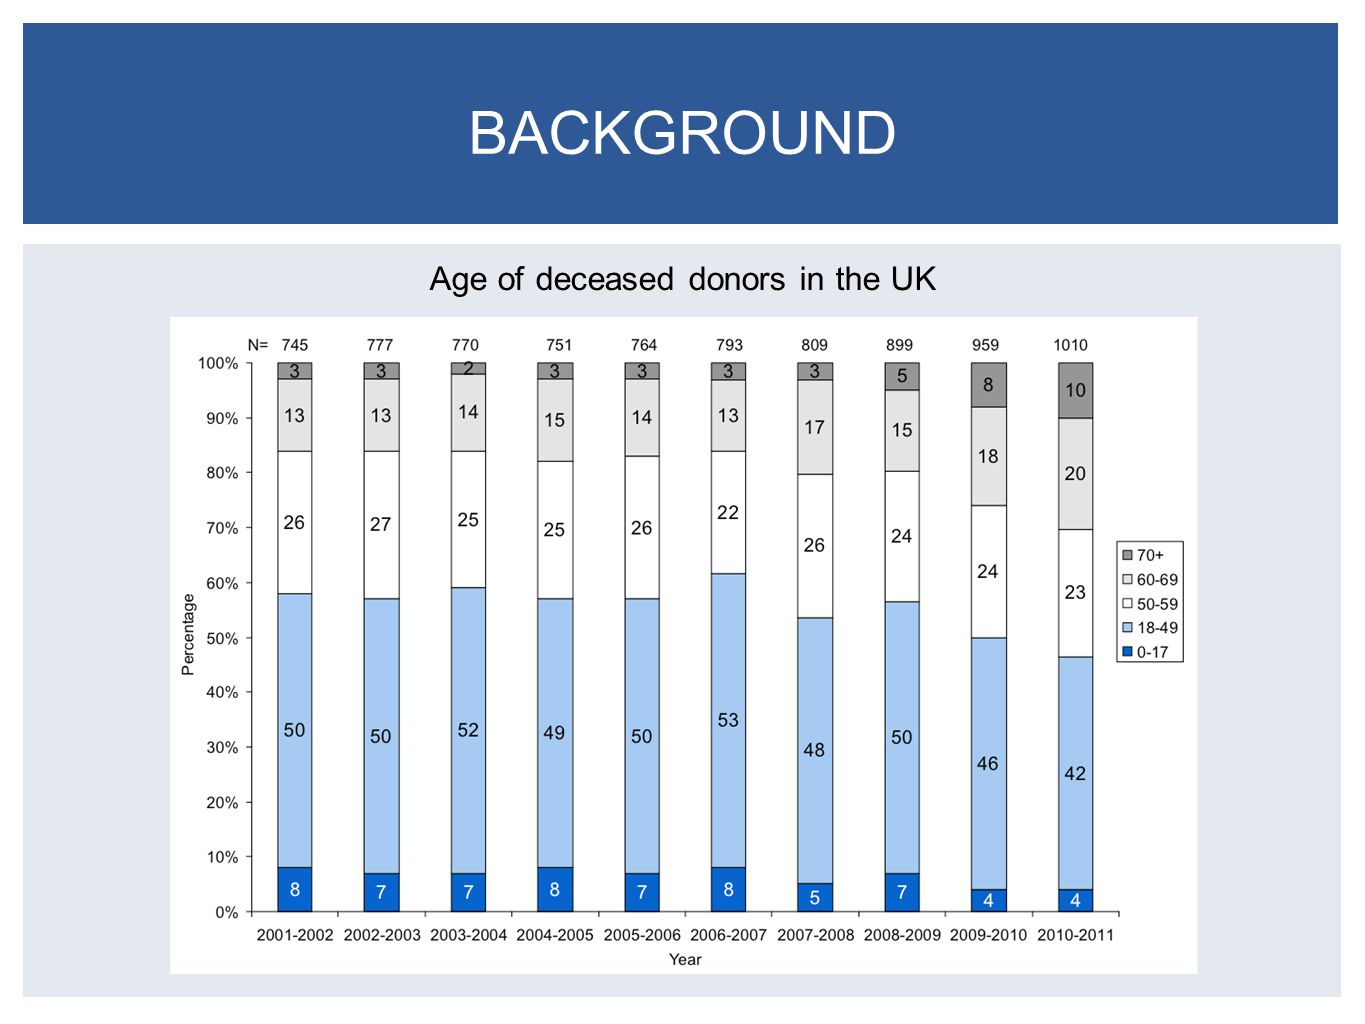 BACKGROUND Age of deceased donors in the UK